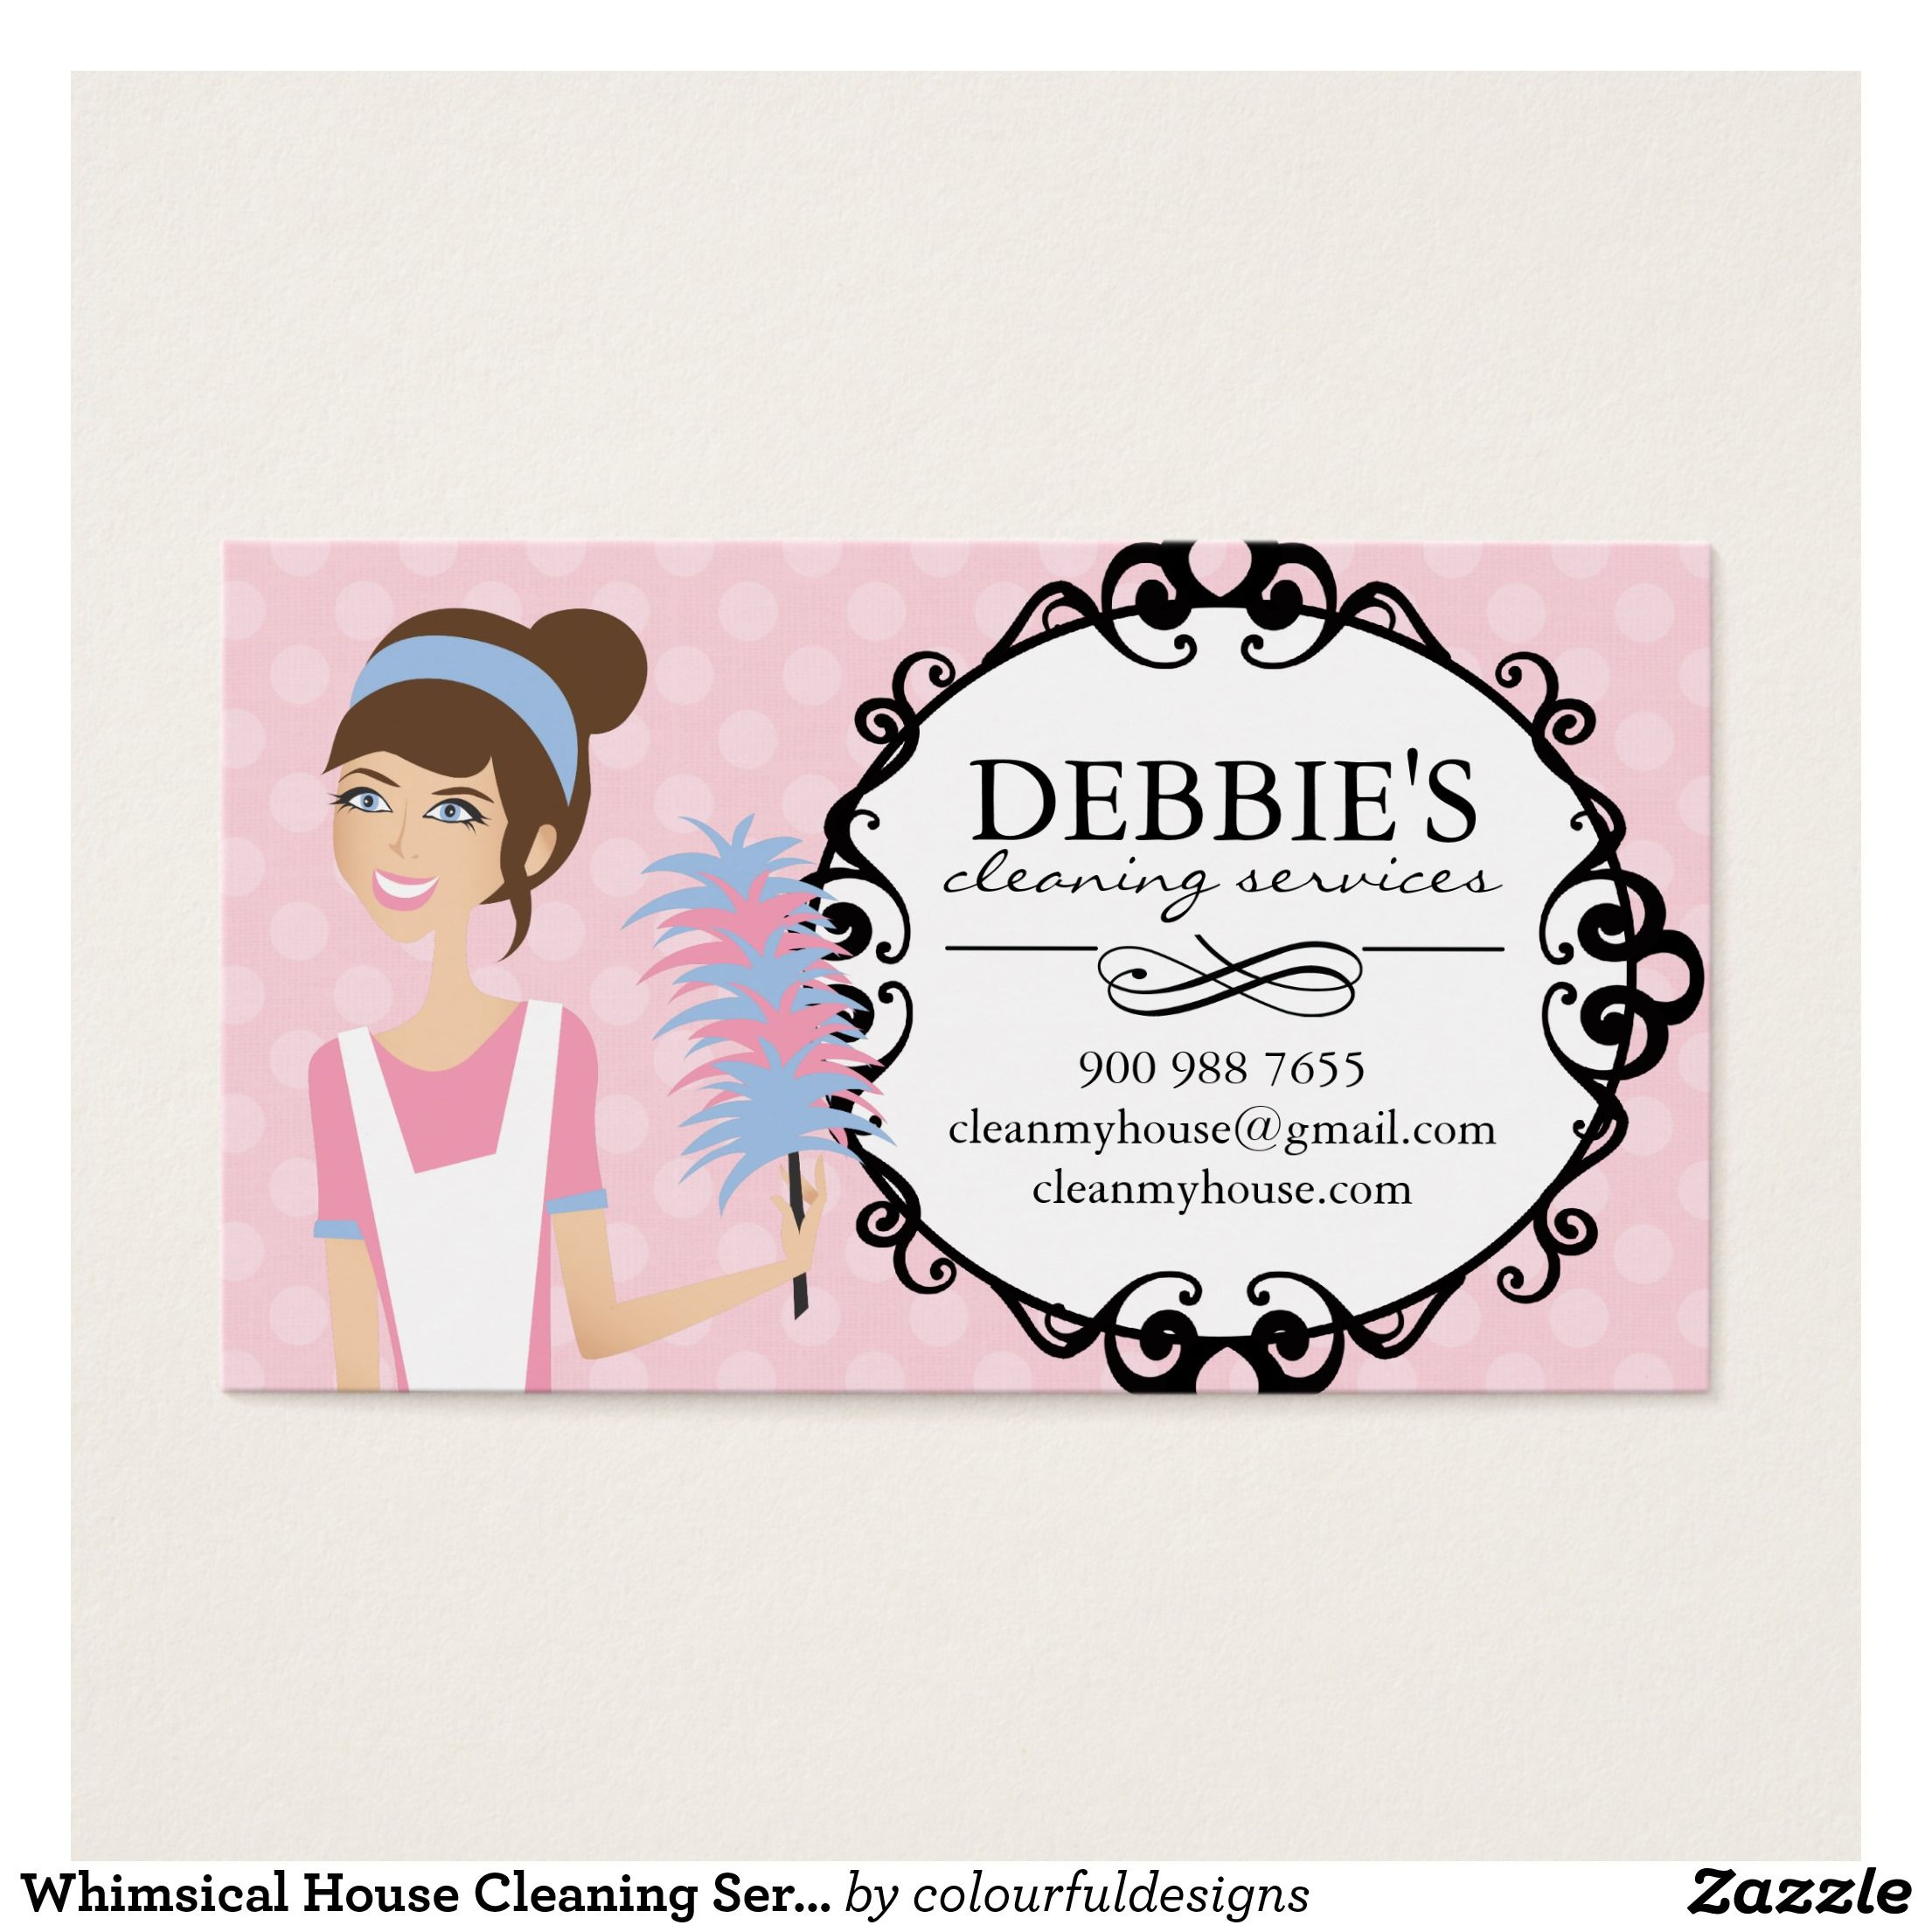 Whimsical House Cleaning Services Business Cards | Pinterest | House ...